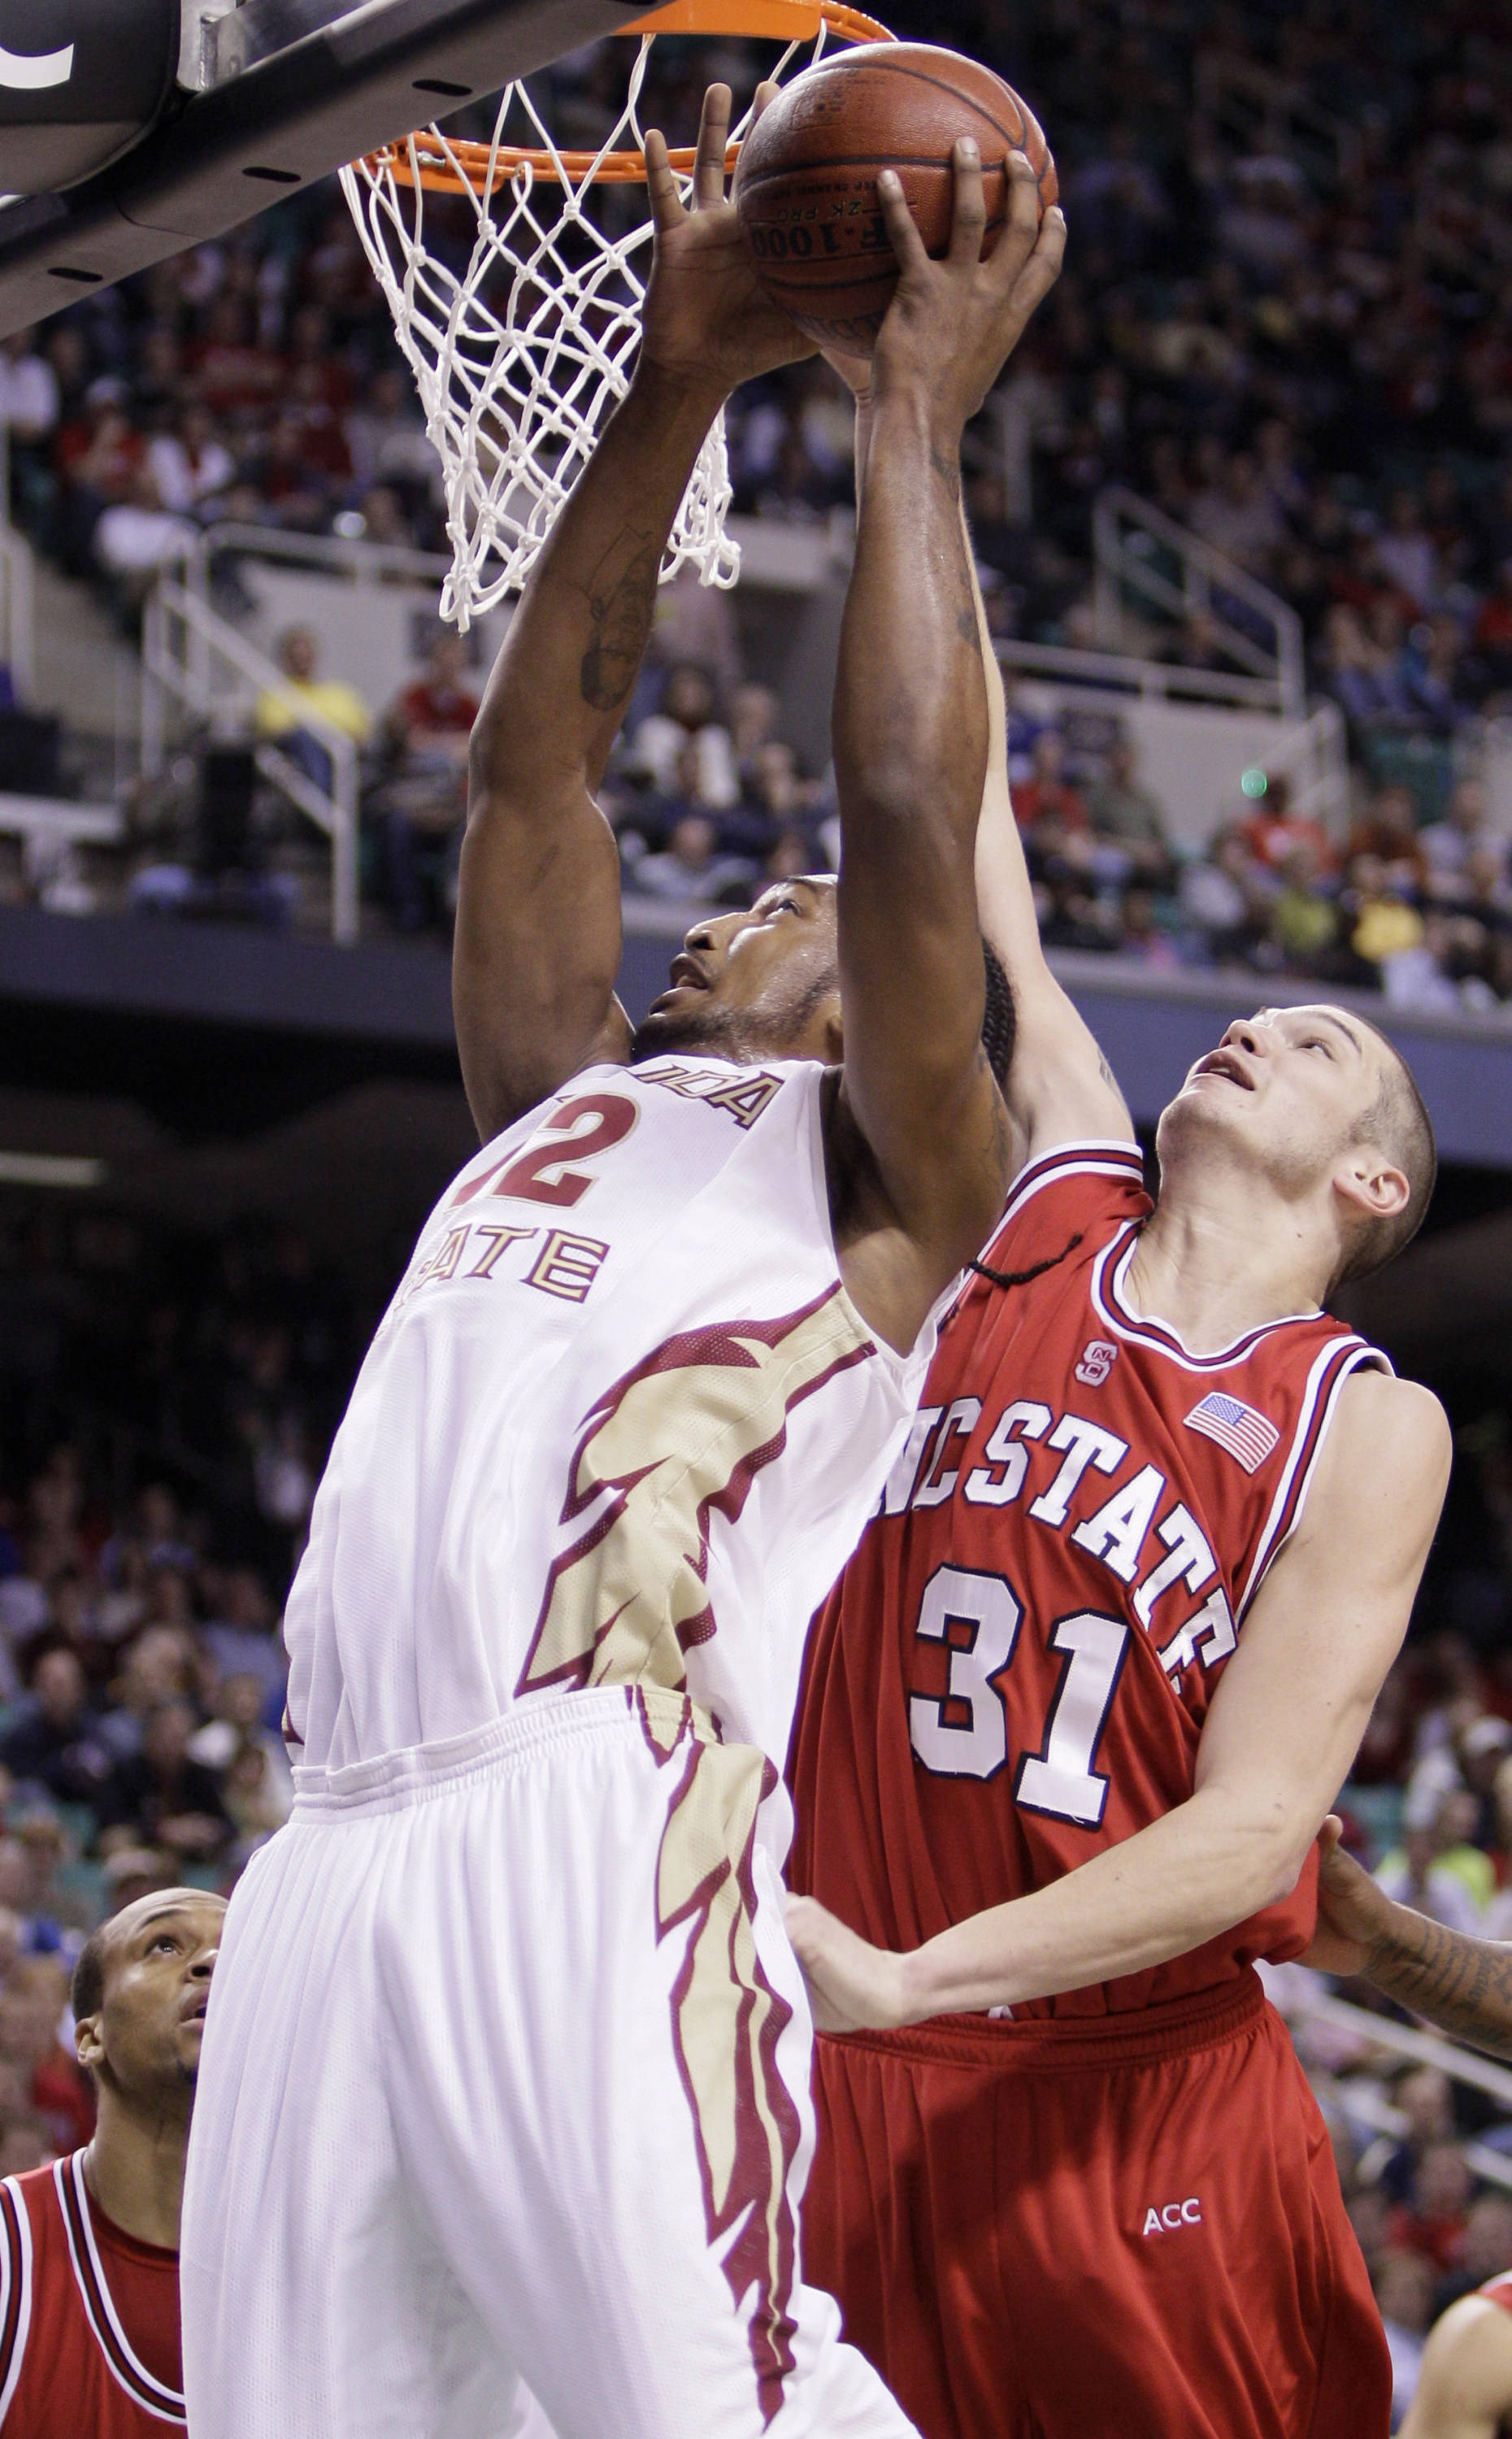 Florida State's Ryan Reid (42) heads to the rim as North Carolina State's Dennis Horner (31) during the first half of an NCAA college basketball game in the Atlantic Coast Conference tournament in Greensboro, N.C., Friday, March 12, 2010. (AP Photo/Gerry Broome)